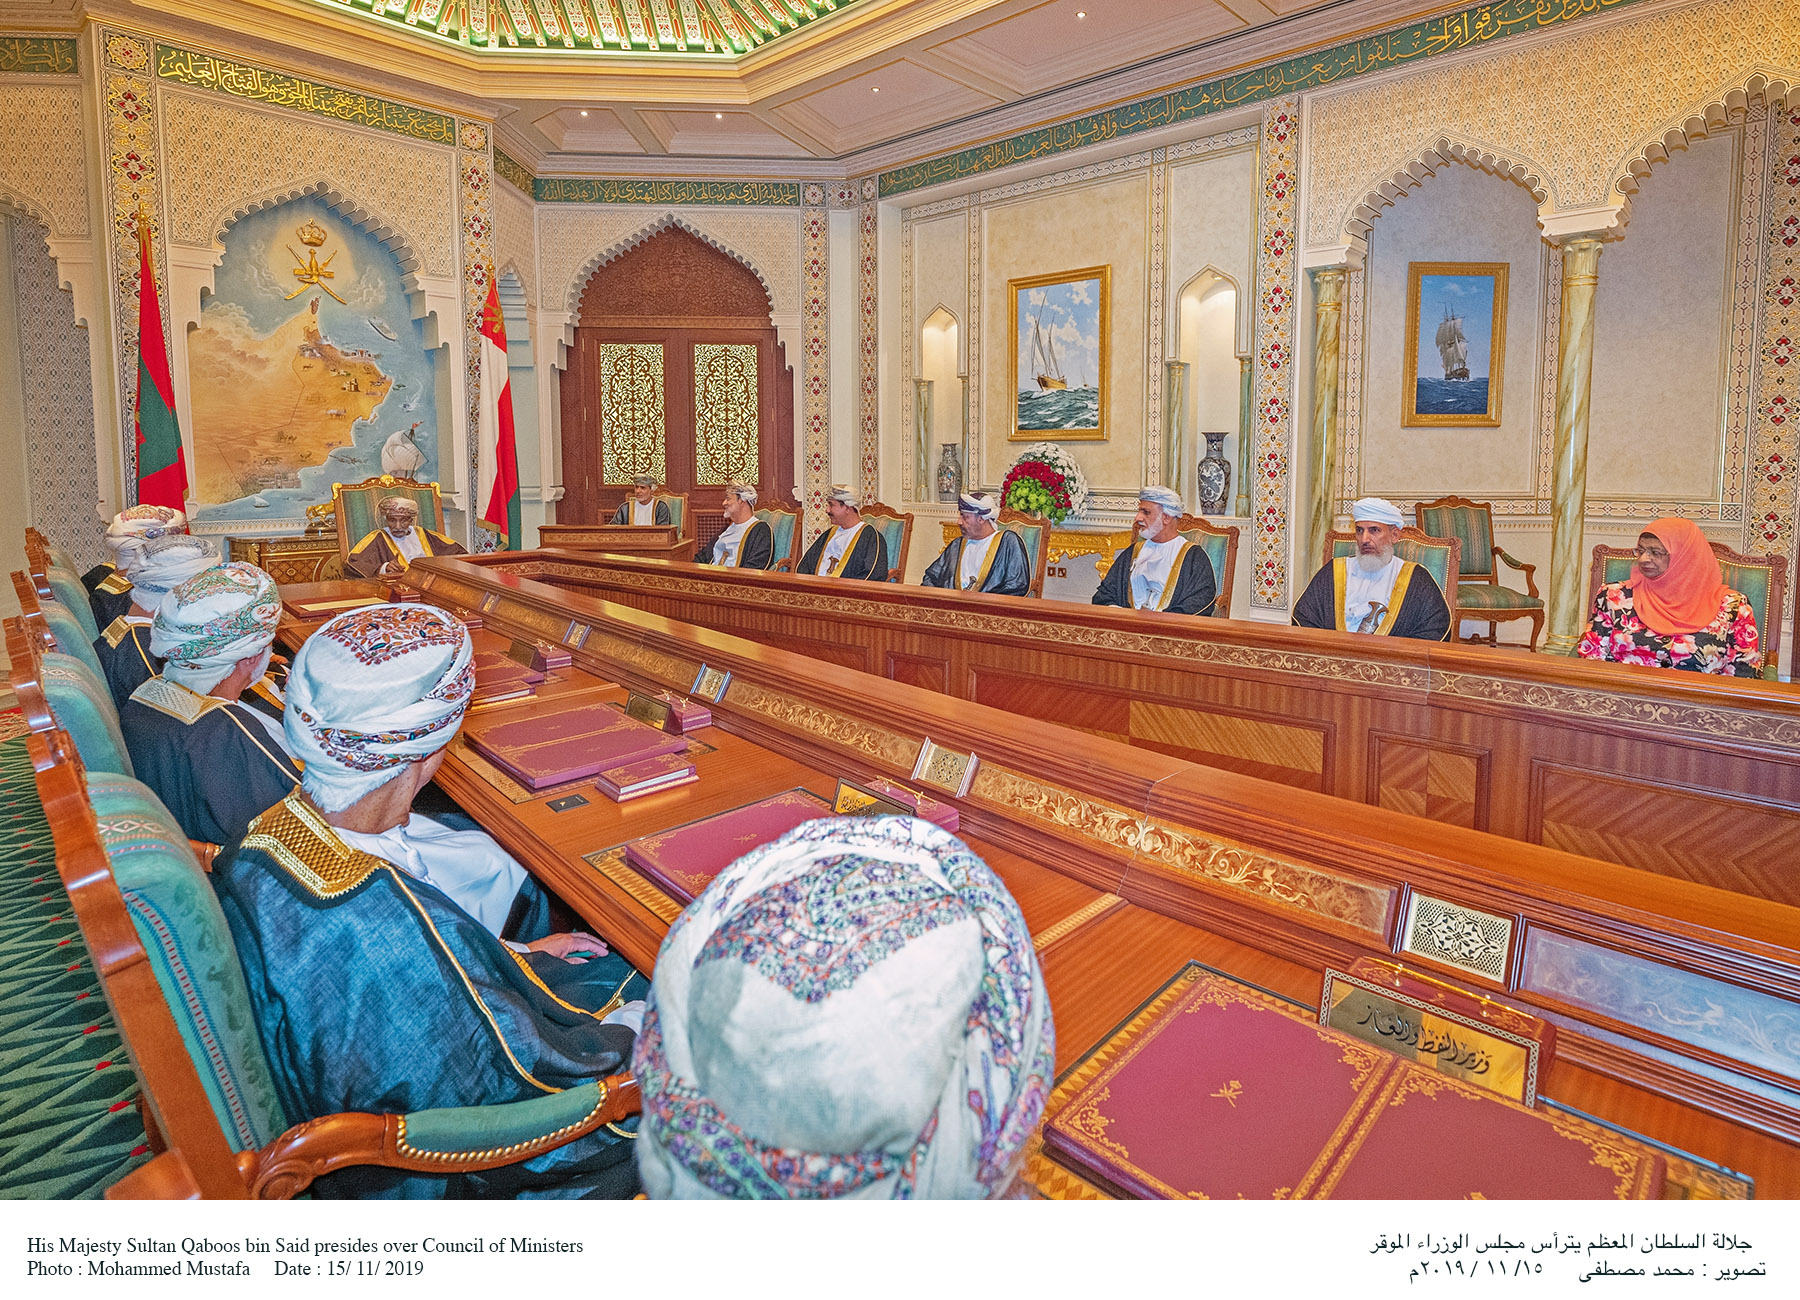 In Pictures: His Majesty Sultan Qaboos presides over Cabinet meeting